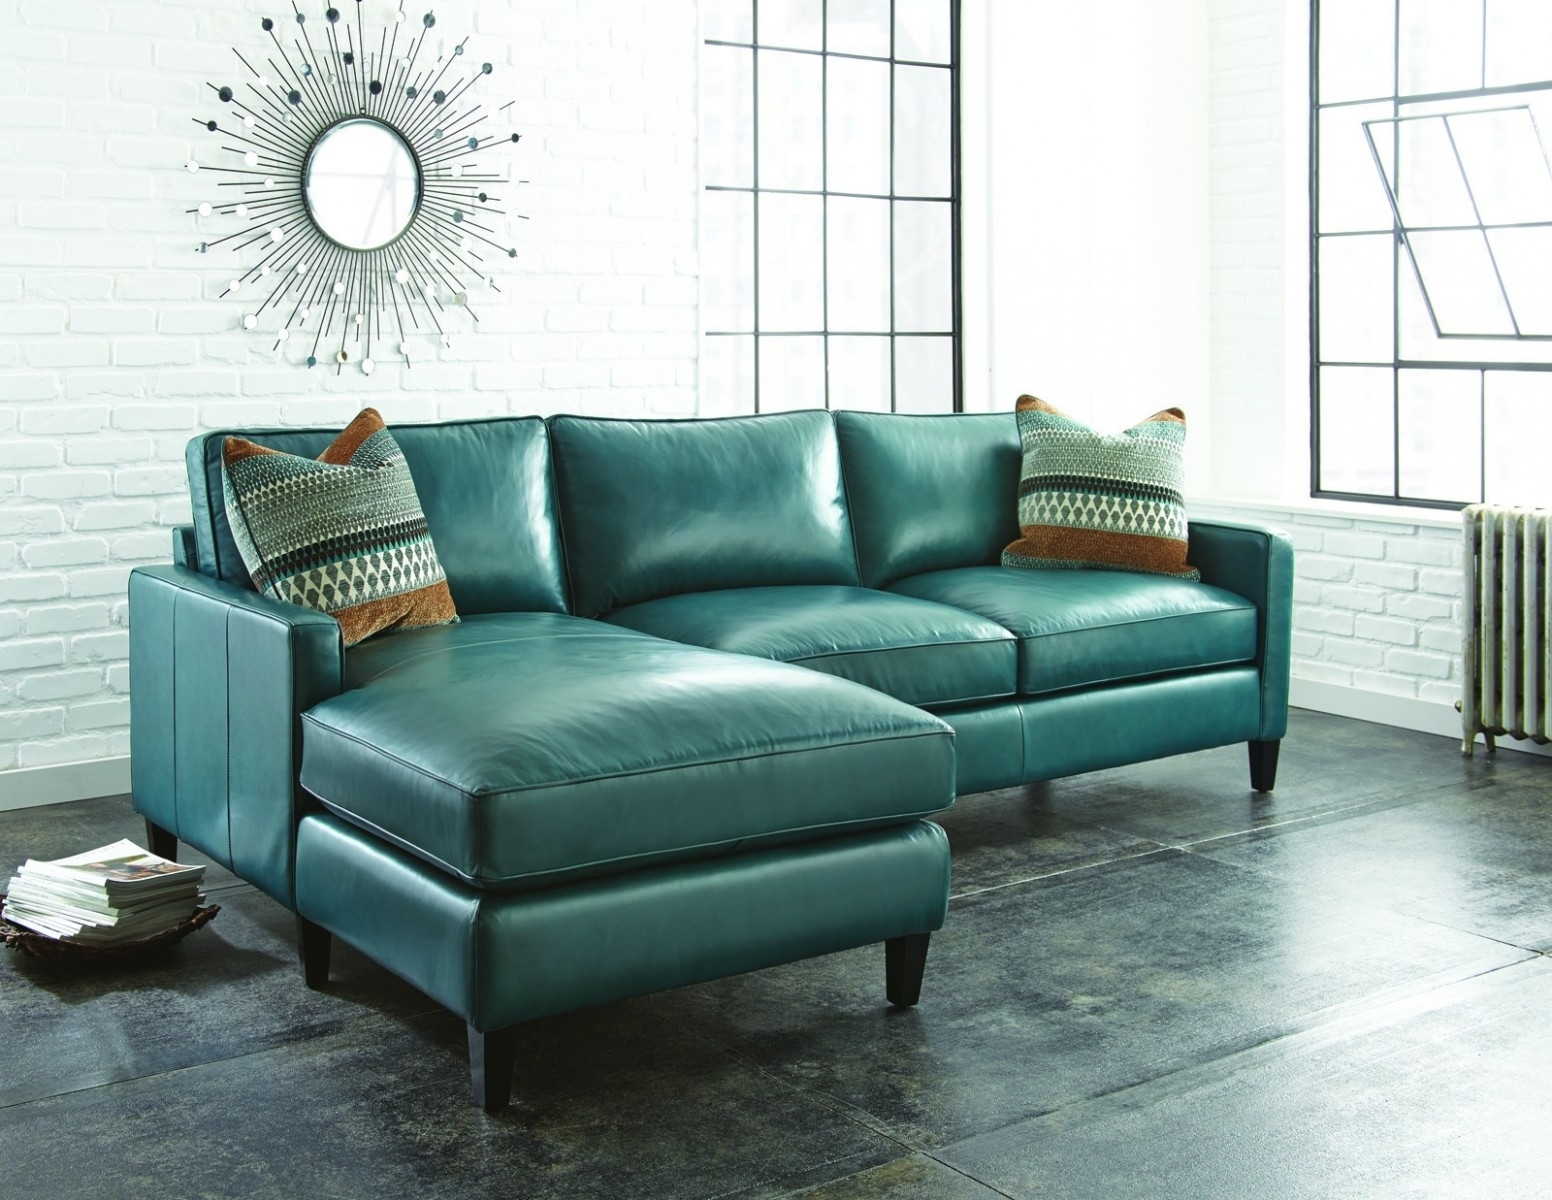 Aqua Green Leather Sofa – The Versatility And Allure Of Leather For Aqua Sofas (Image 1 of 10)